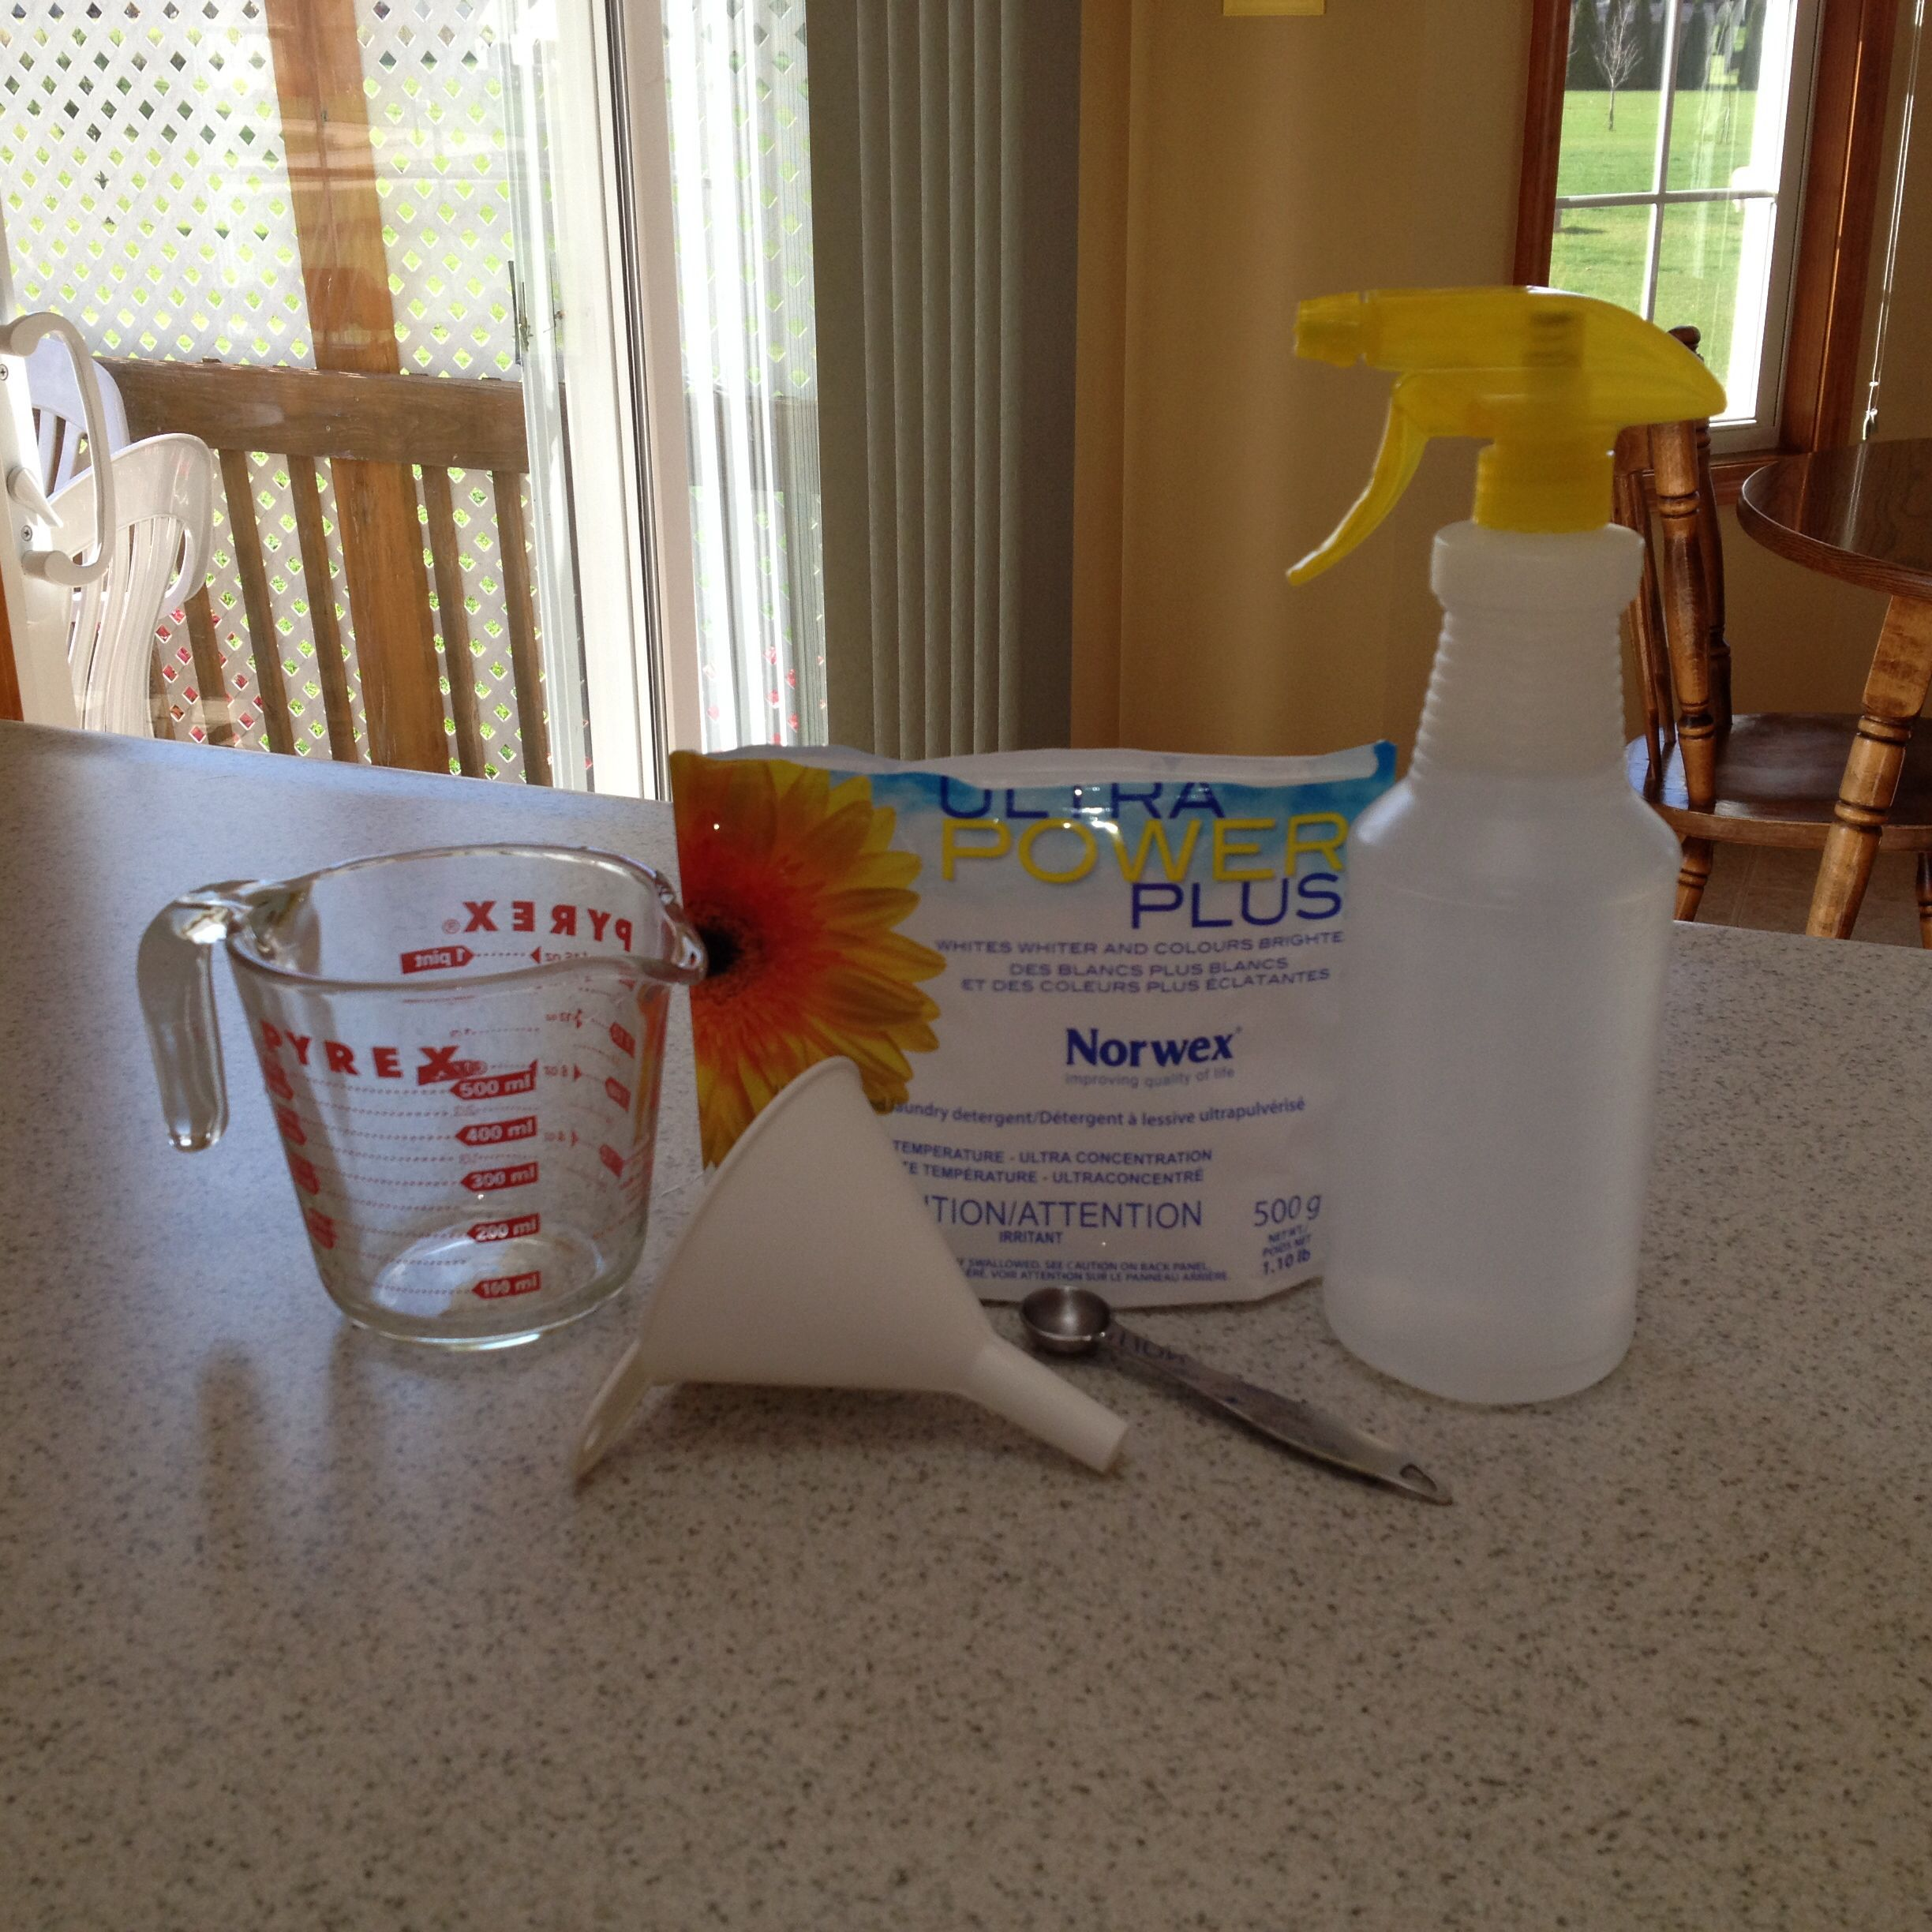 To Use Norwex Ultra Power Plus Laundry Detergent As An All